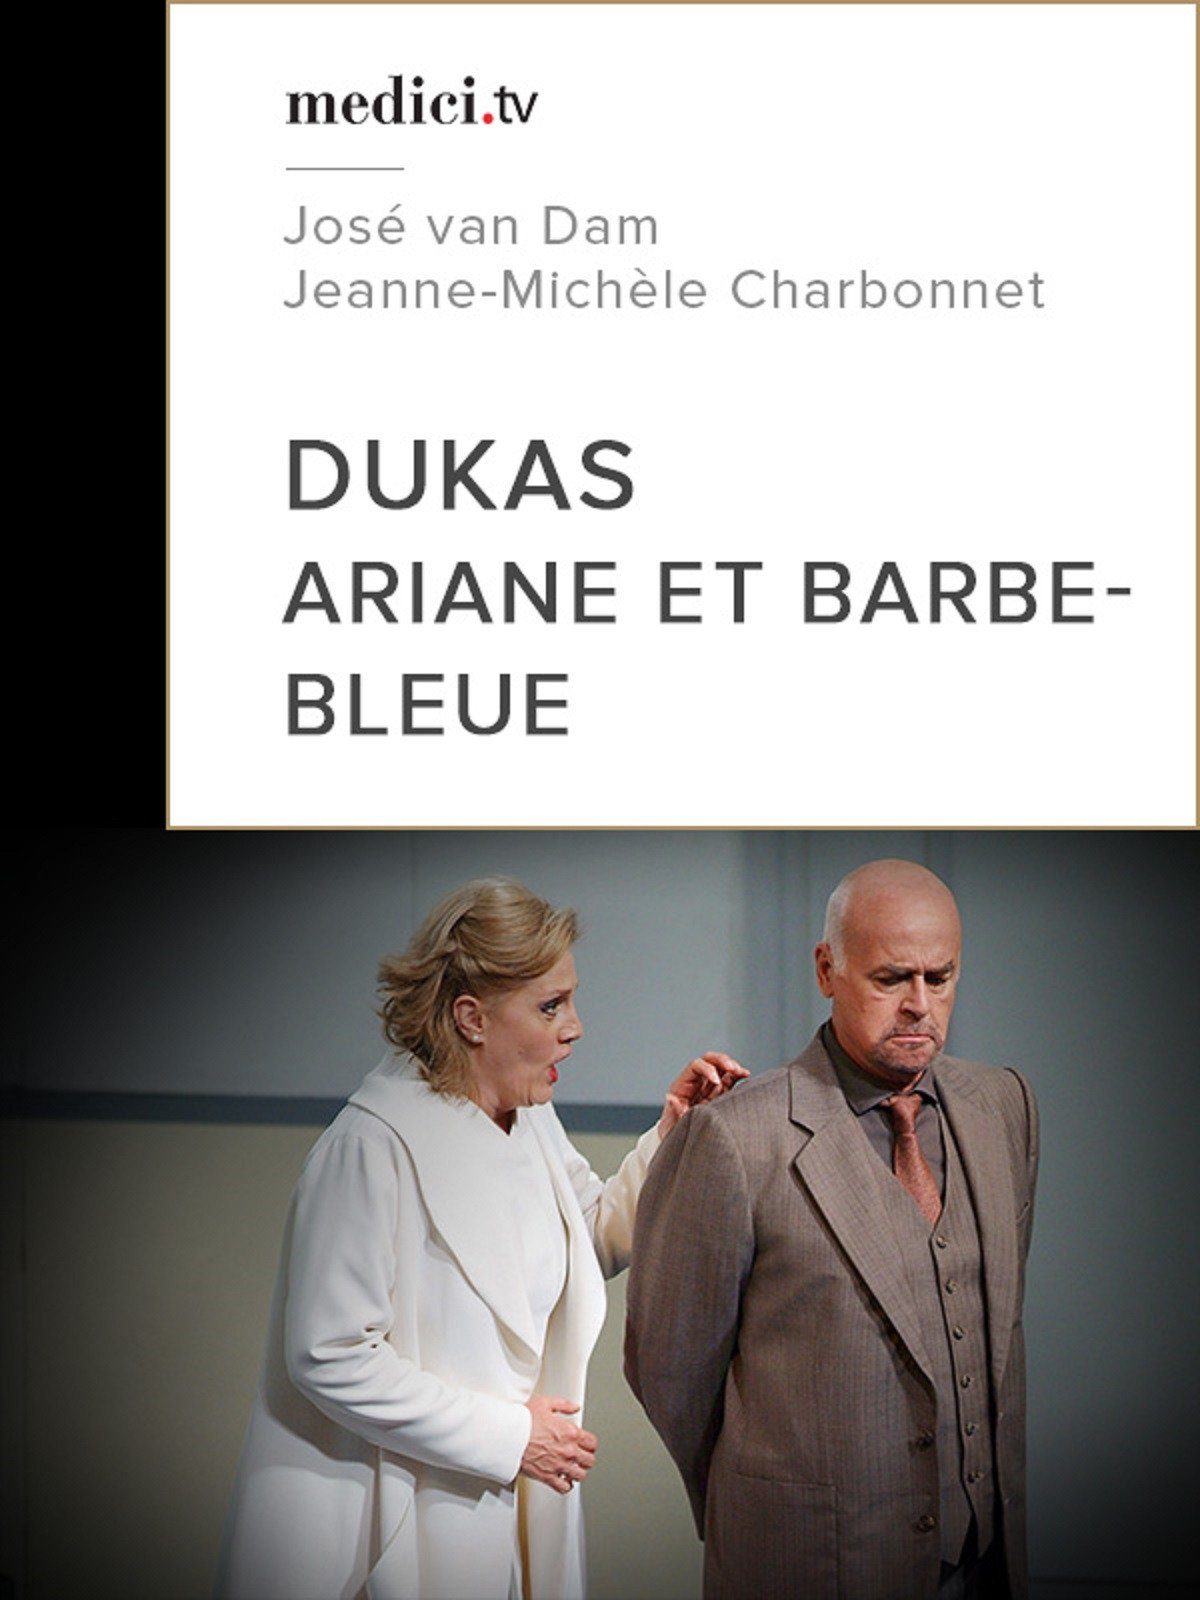 Dukas, Ariane et Barbe-Bleue on Amazon Prime Video UK